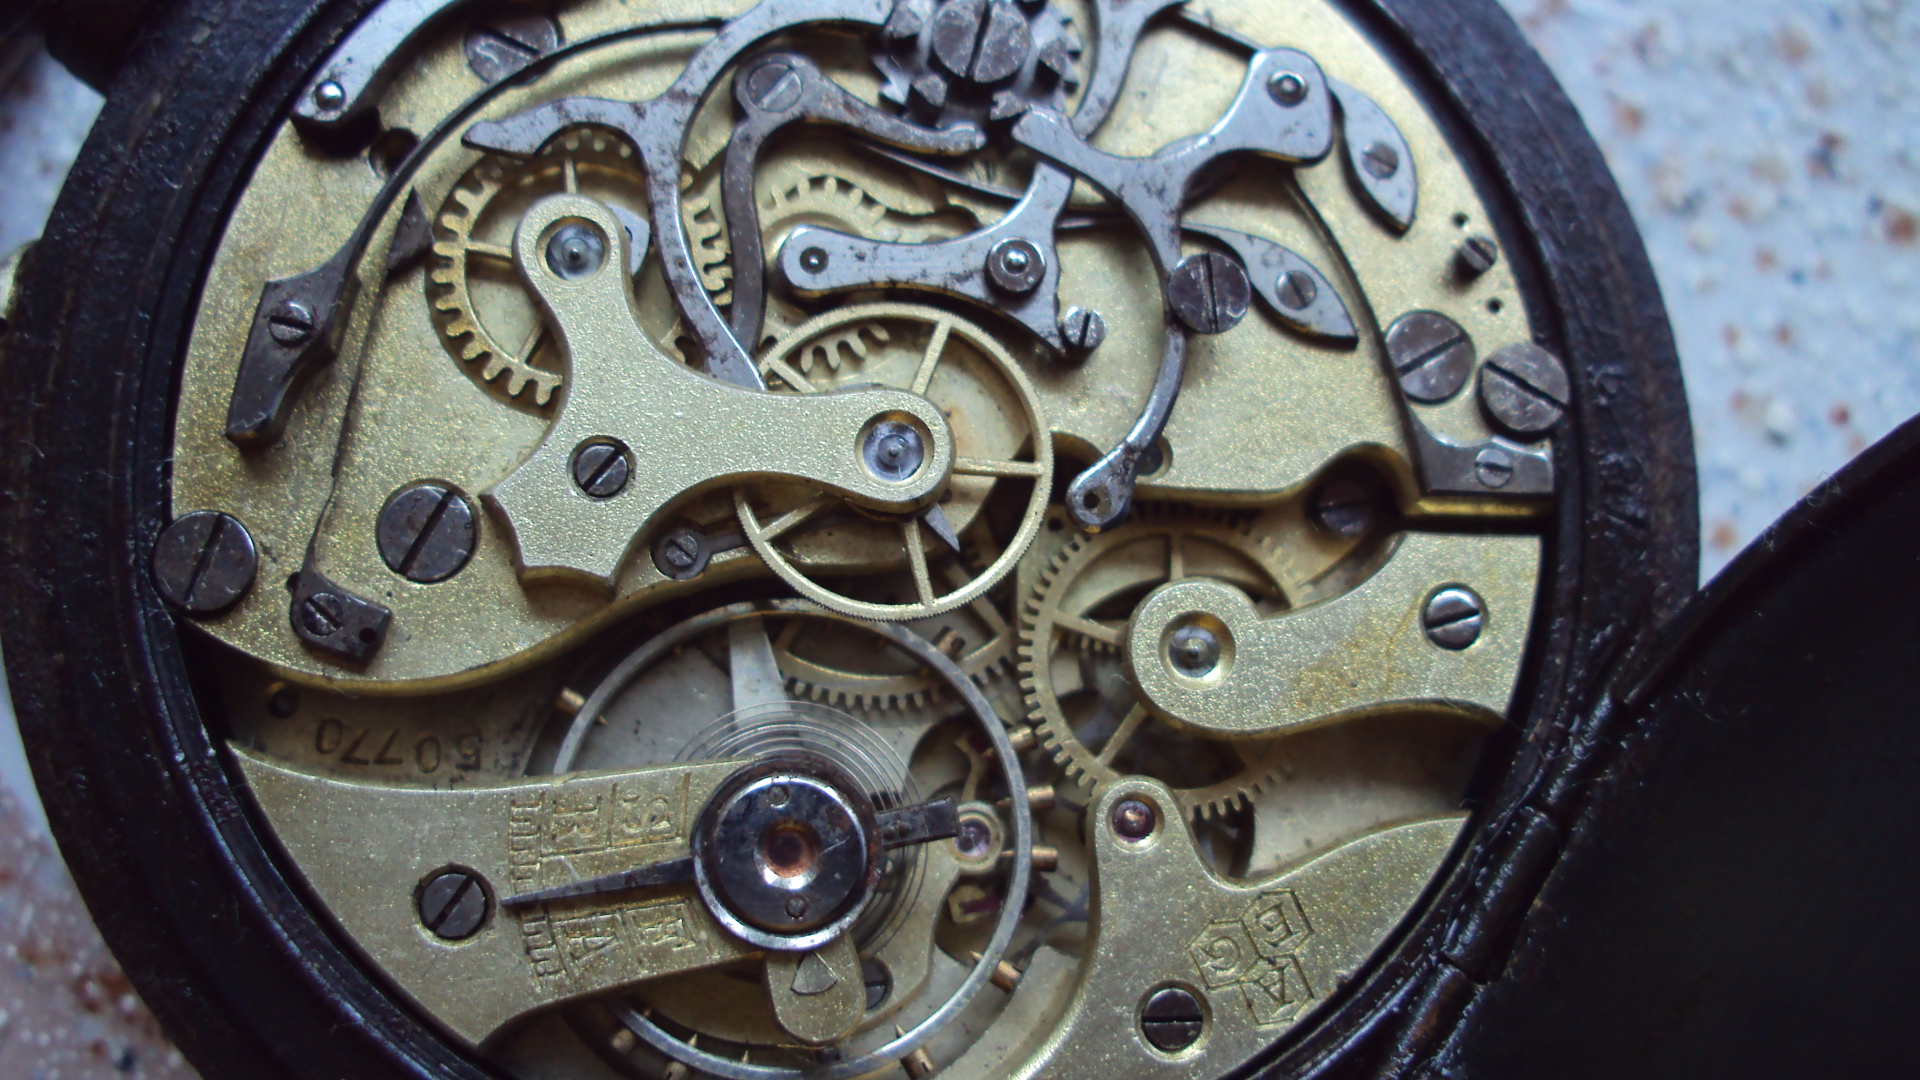 Free Download Mechanical Gears Wallpaper Hd Of Time Pictures